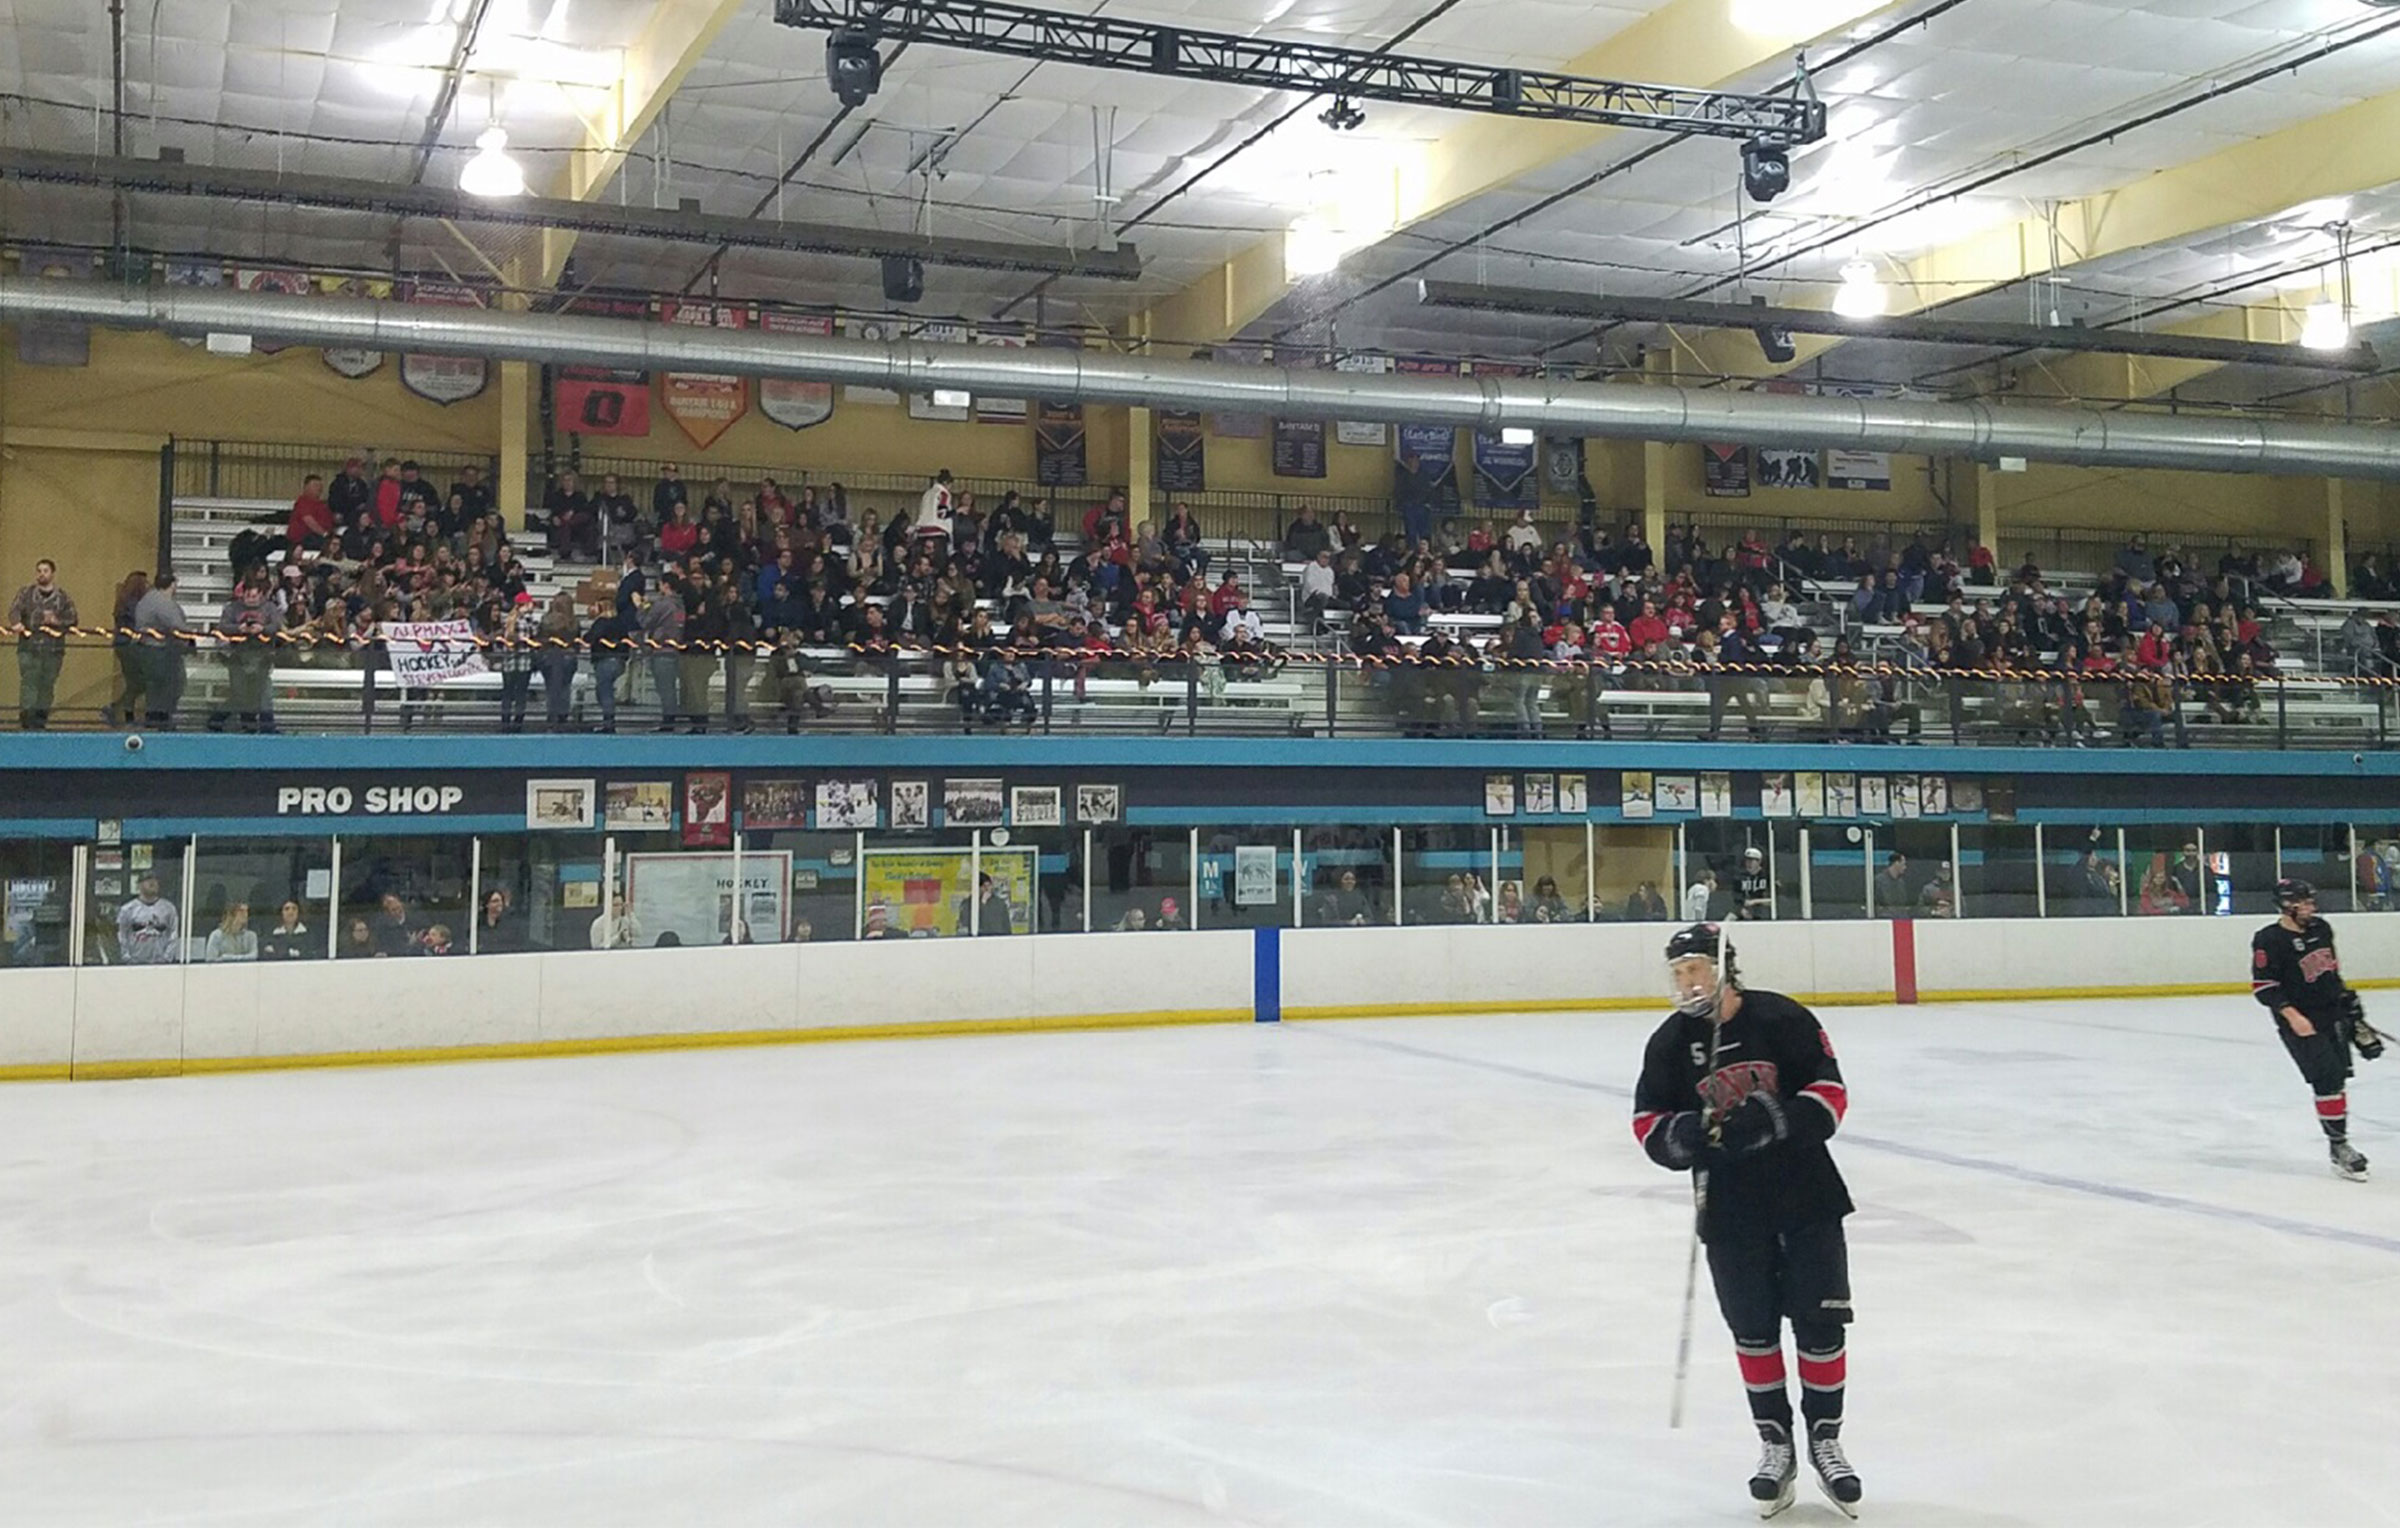 The Best Ice Skating Rink In North Las Vegas Sobe Ice Arena